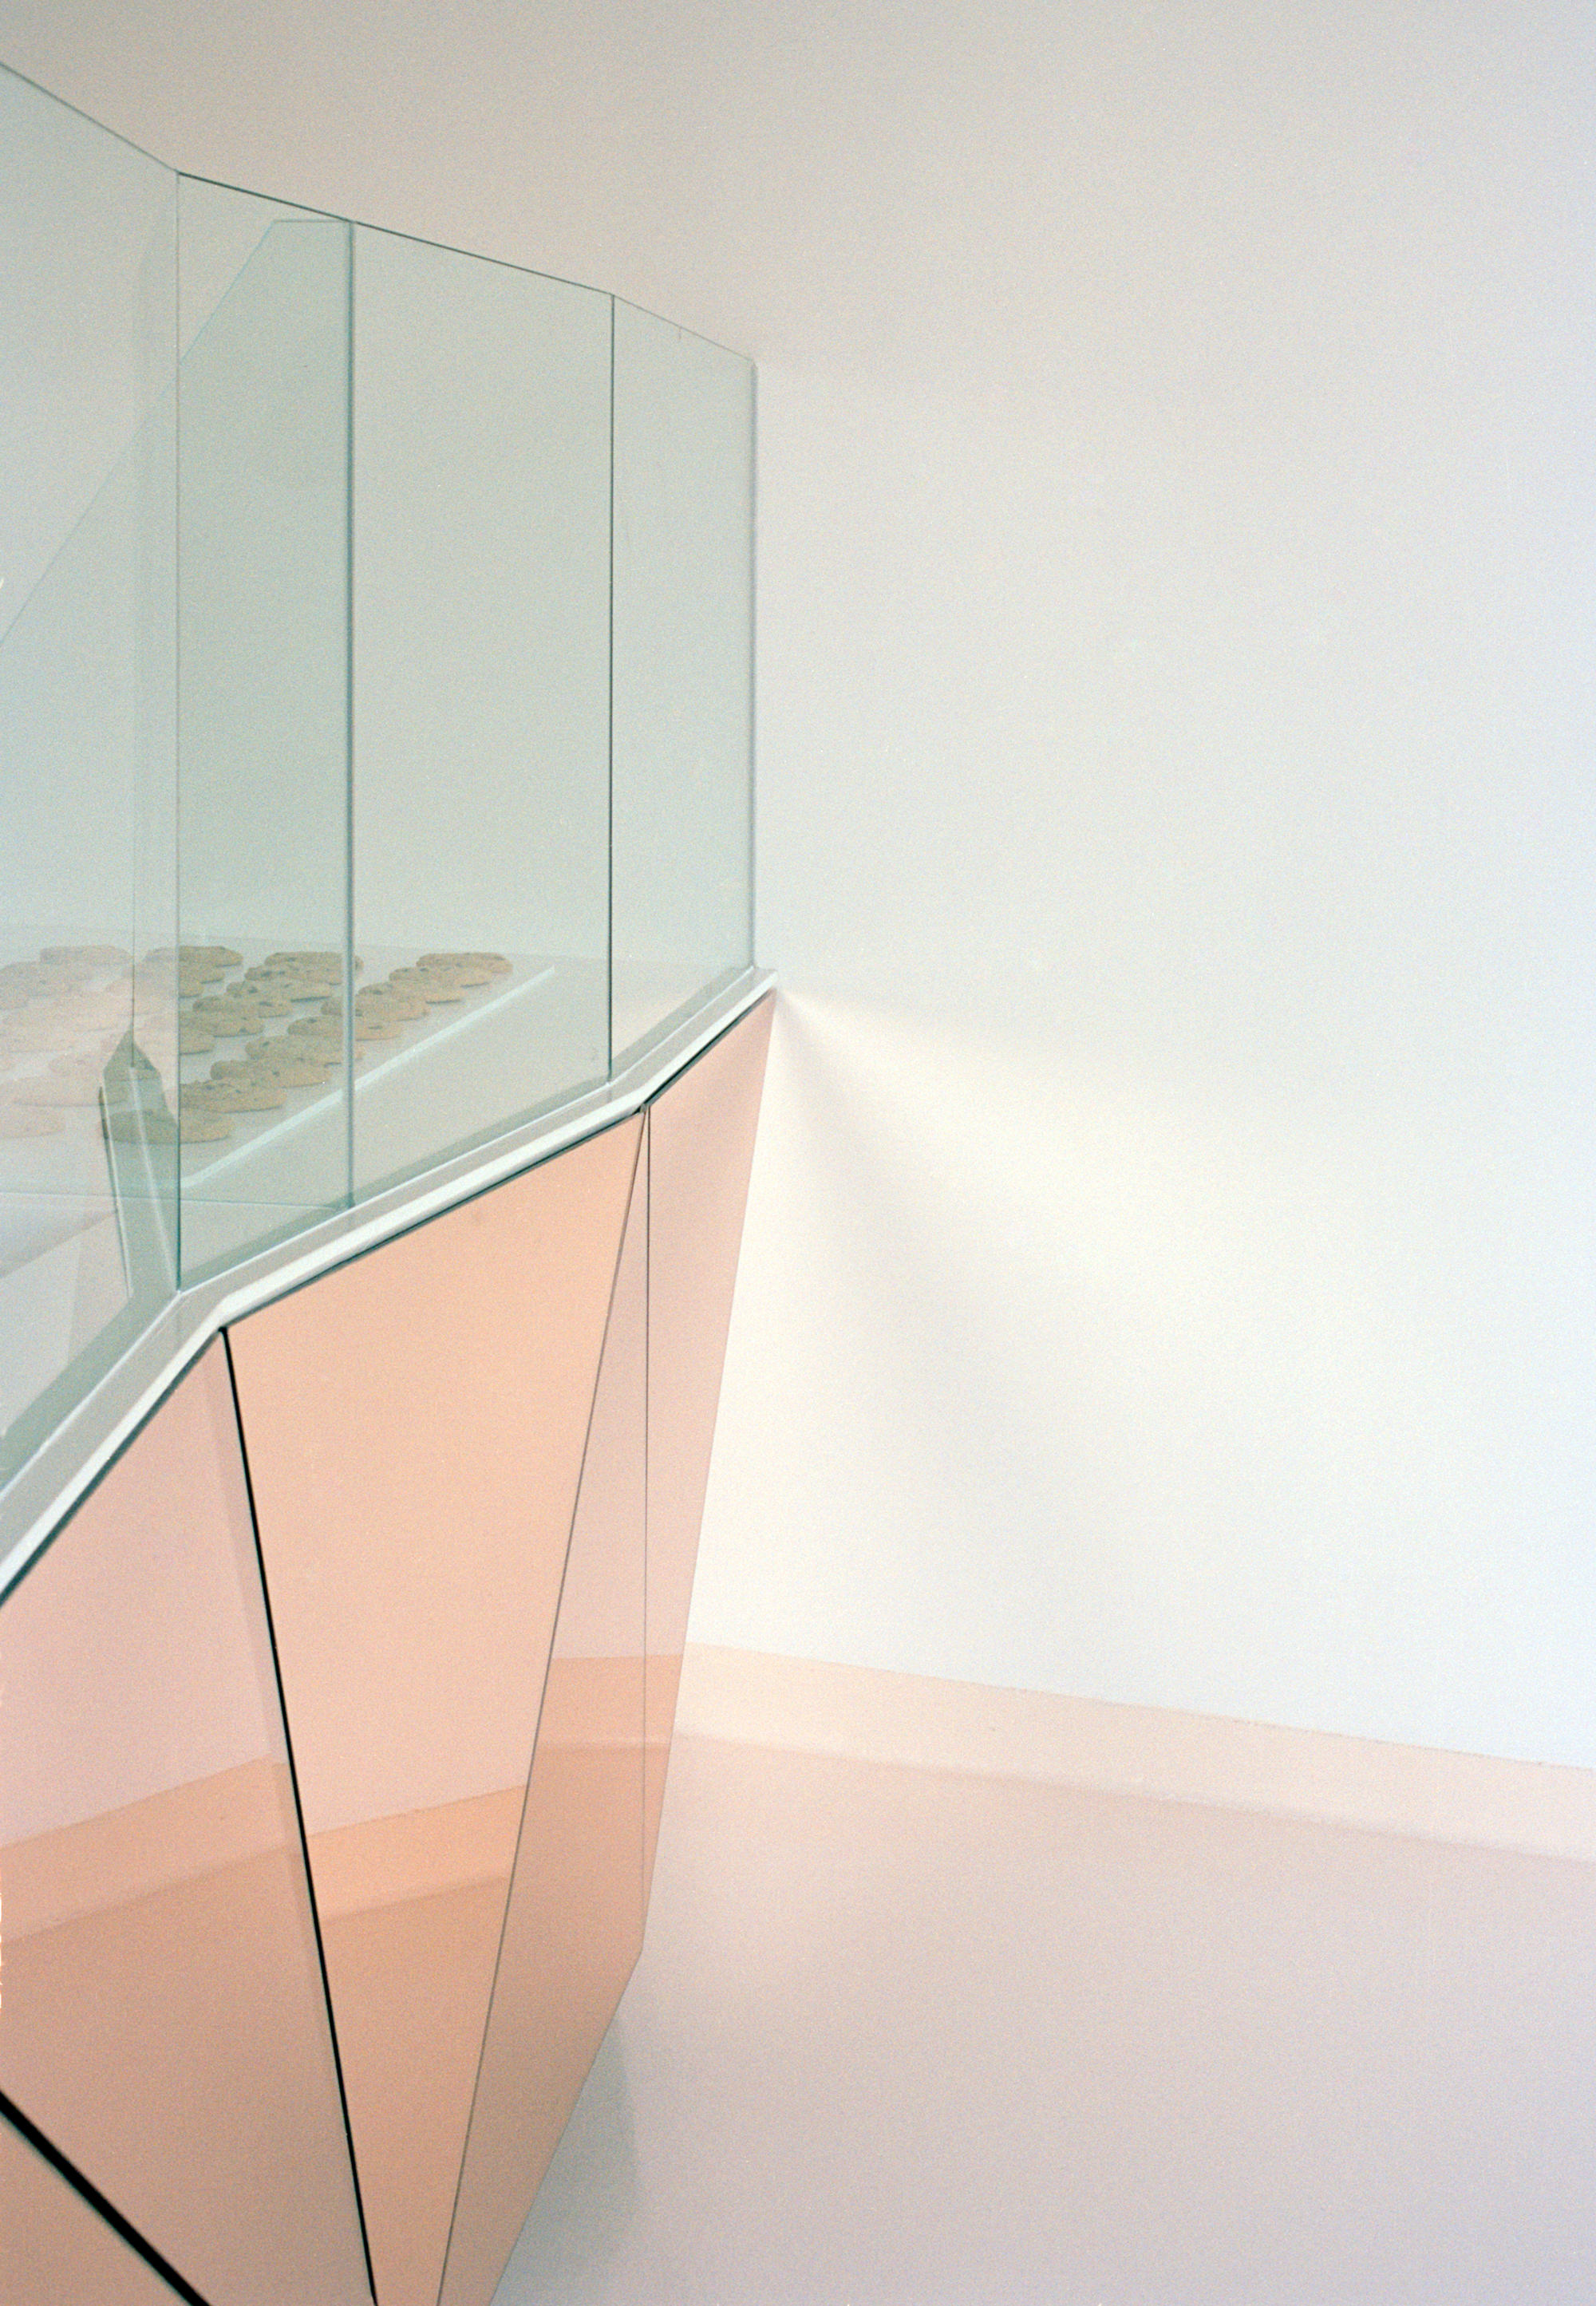 Throughout the day the faceted mirror reflects continually shifting shades of peace.